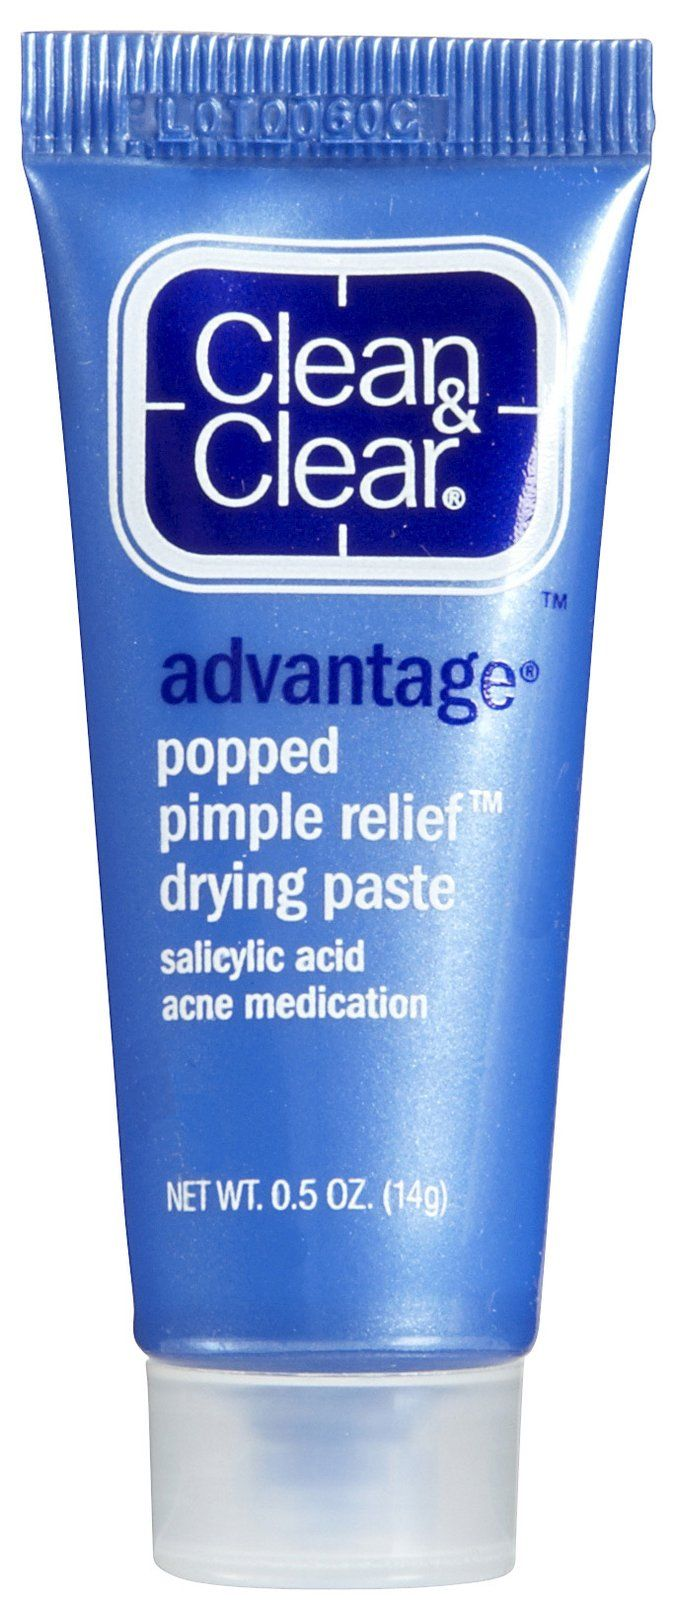 Clean & Clear Advantage Popped Pimple Relief Drying Paste - Best Price